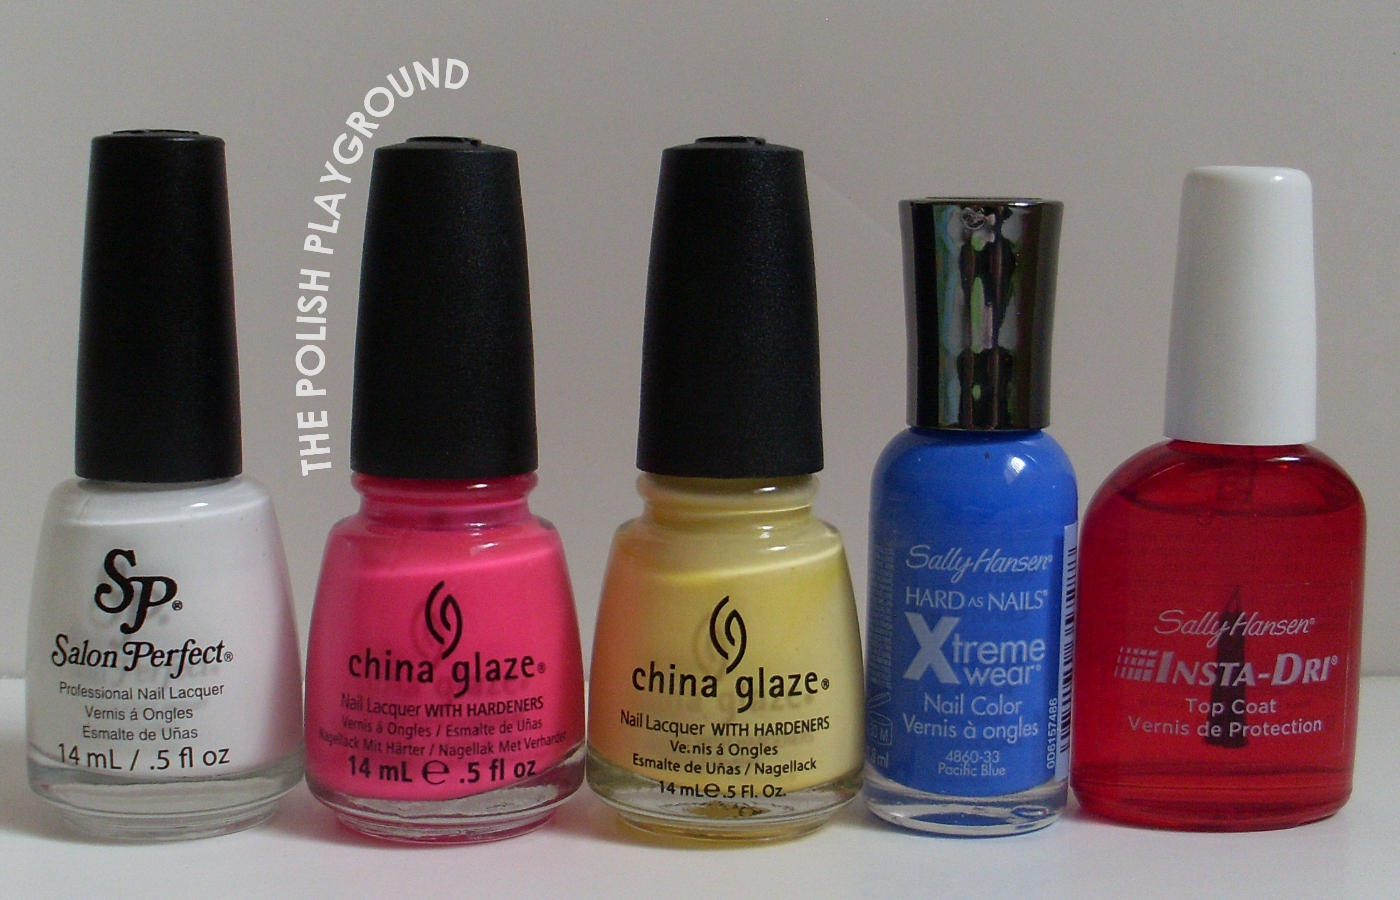 Salon Perfect, China Glaze, Sally Hansen